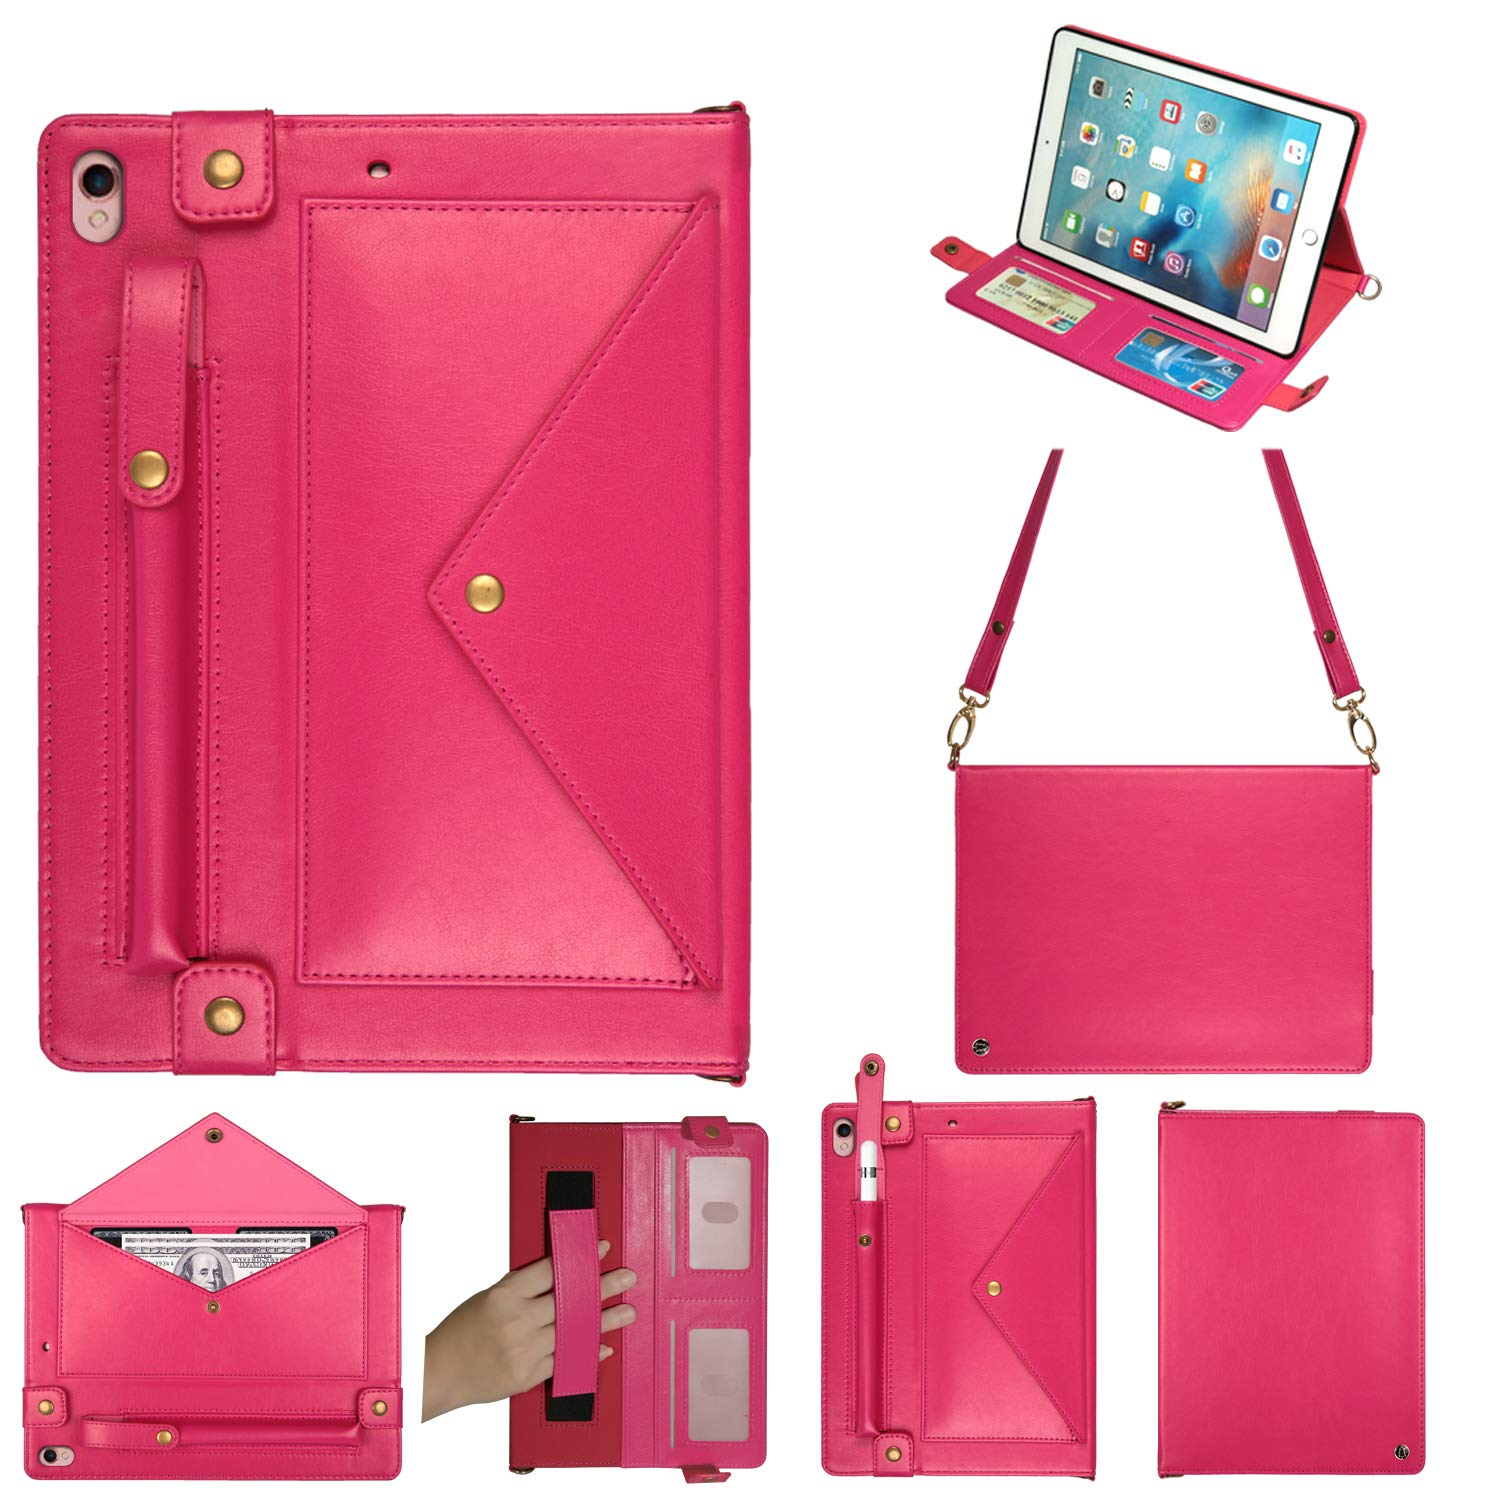 MeiLiio Wallet Case for iPad Pro 10.5 File Folio Pocket PU Leather Hangbag Shell Magnetic Stand Multi Function Sleeve Protective Cover for iPad Air 3 Women&Girl (Hot Pink) by MeiLiio